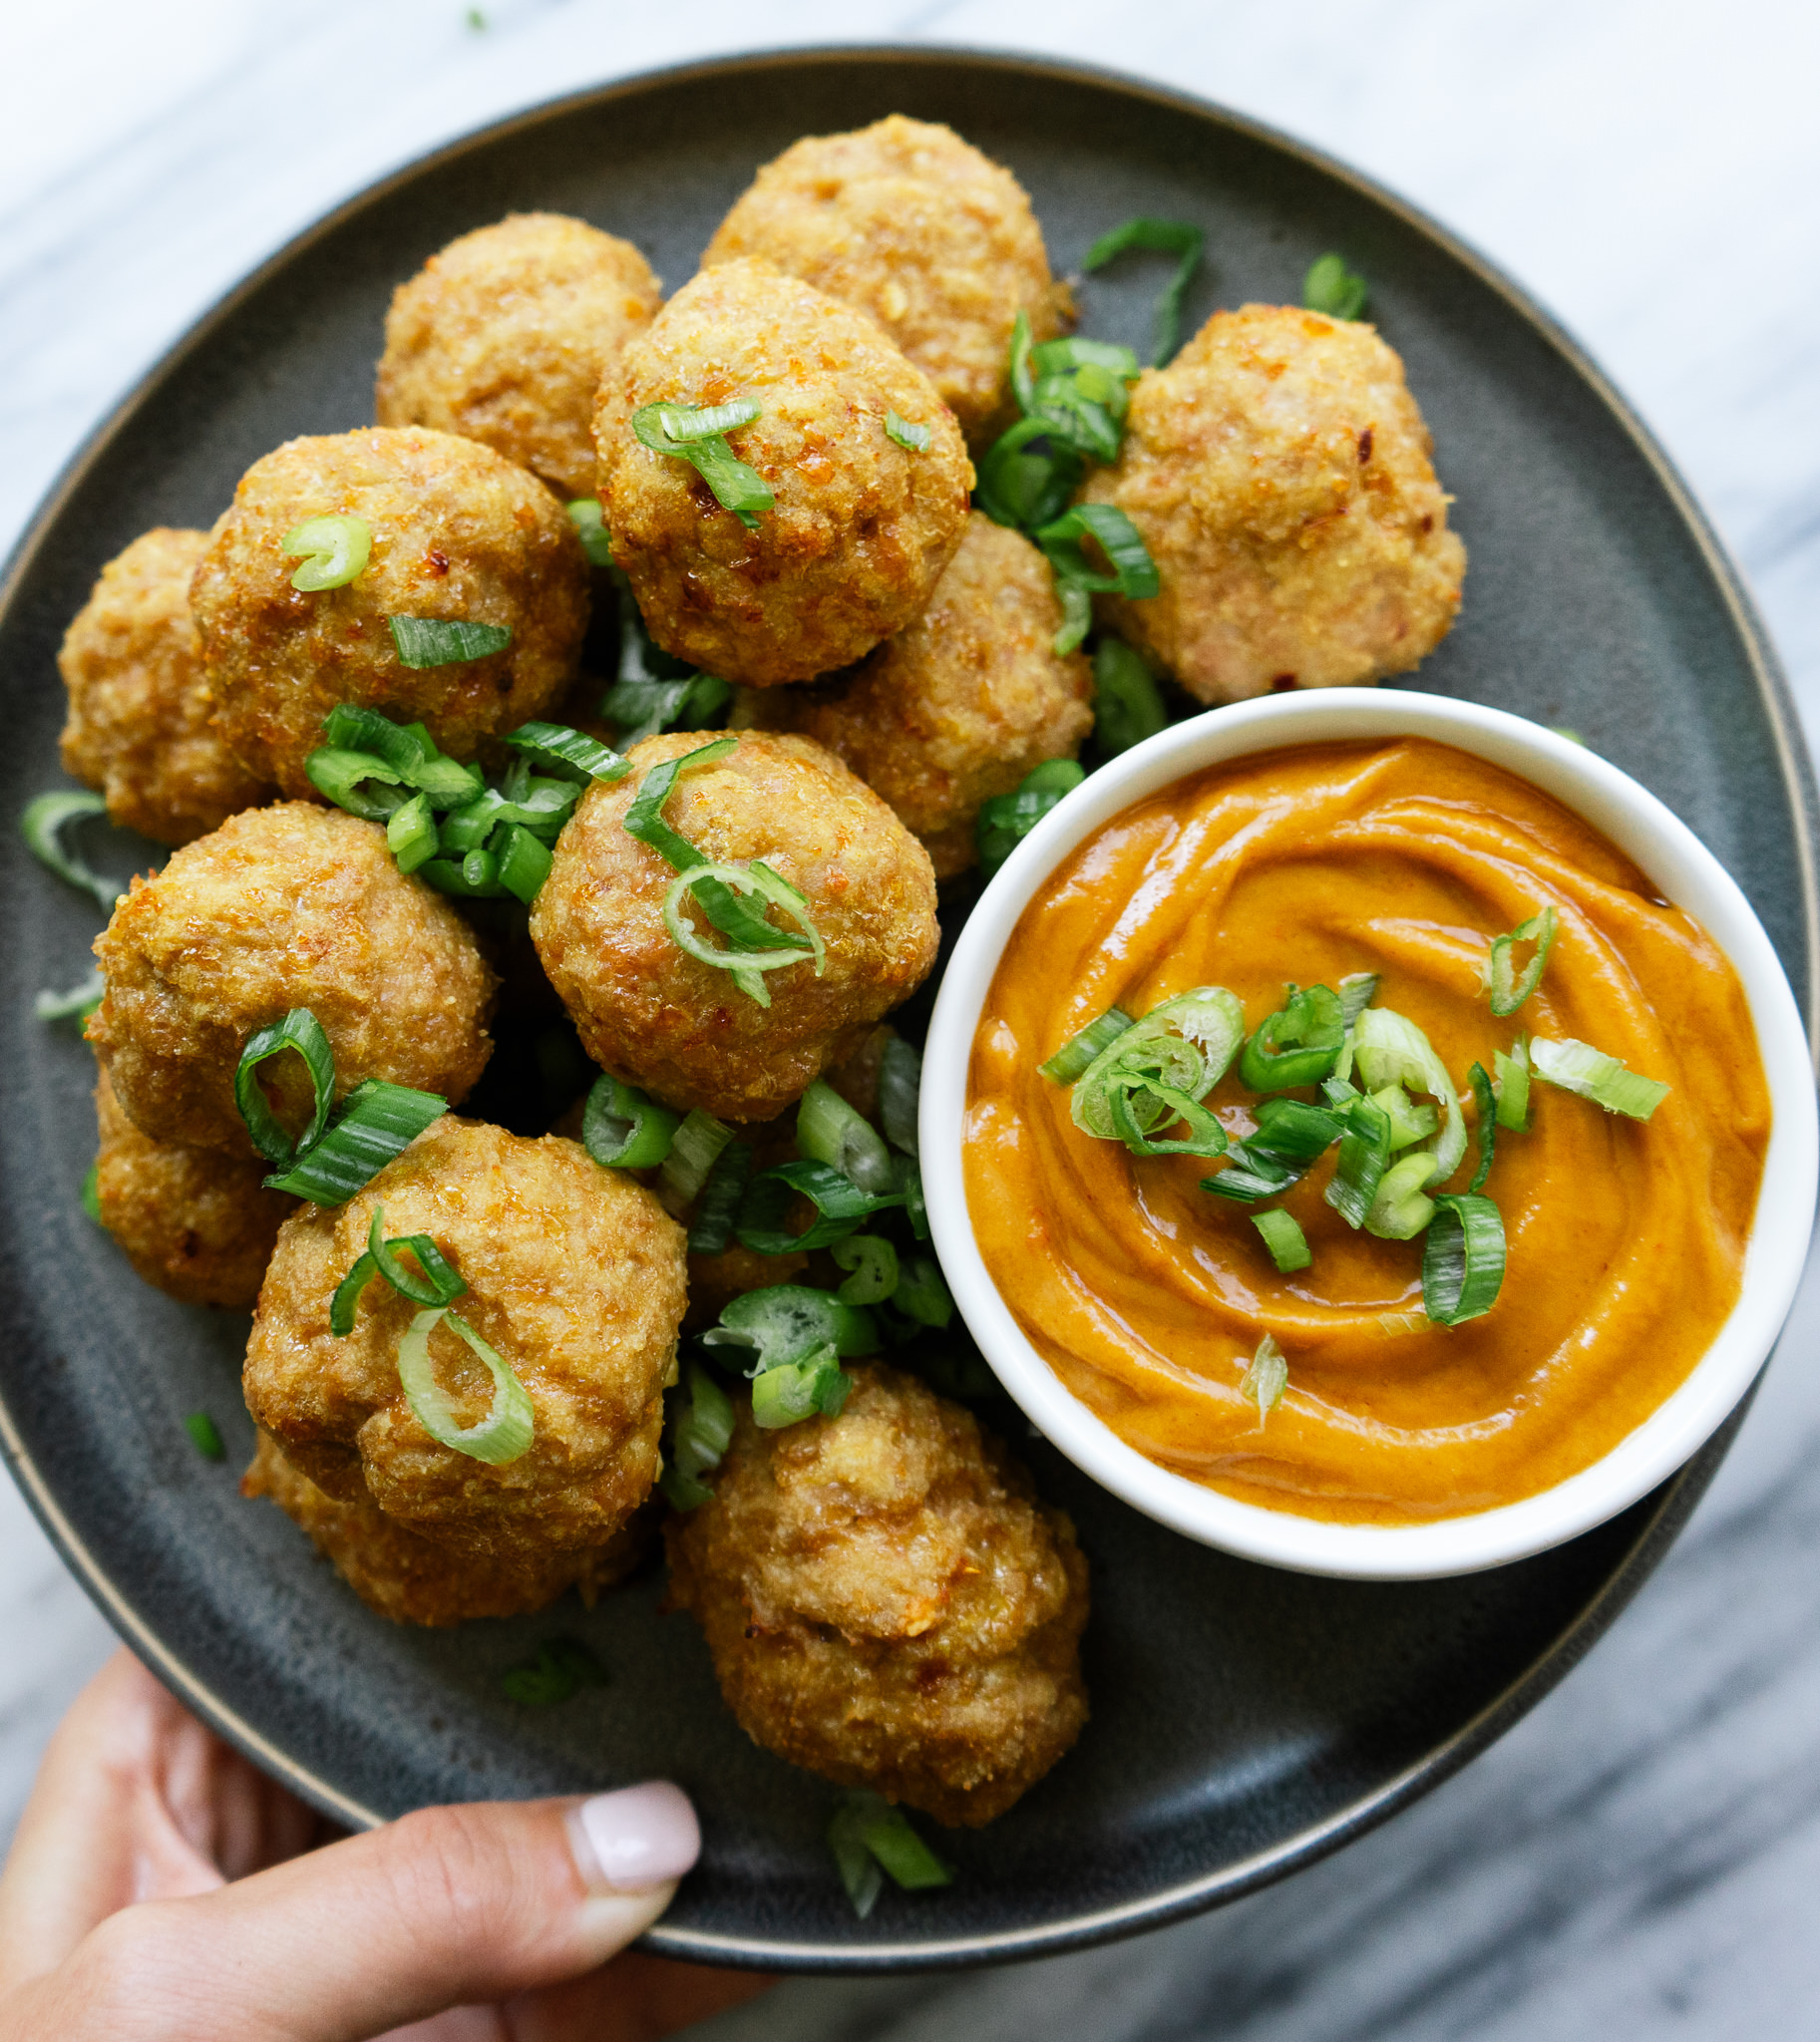 Sesame turkey meatballs with spicy peanut sauce is a delicious and simple low carb meal that can be a full dinner or a delicious appetizer. This flavorful dish comes together in less than 40 minutes. Make these meatballs for your next dinner or party!